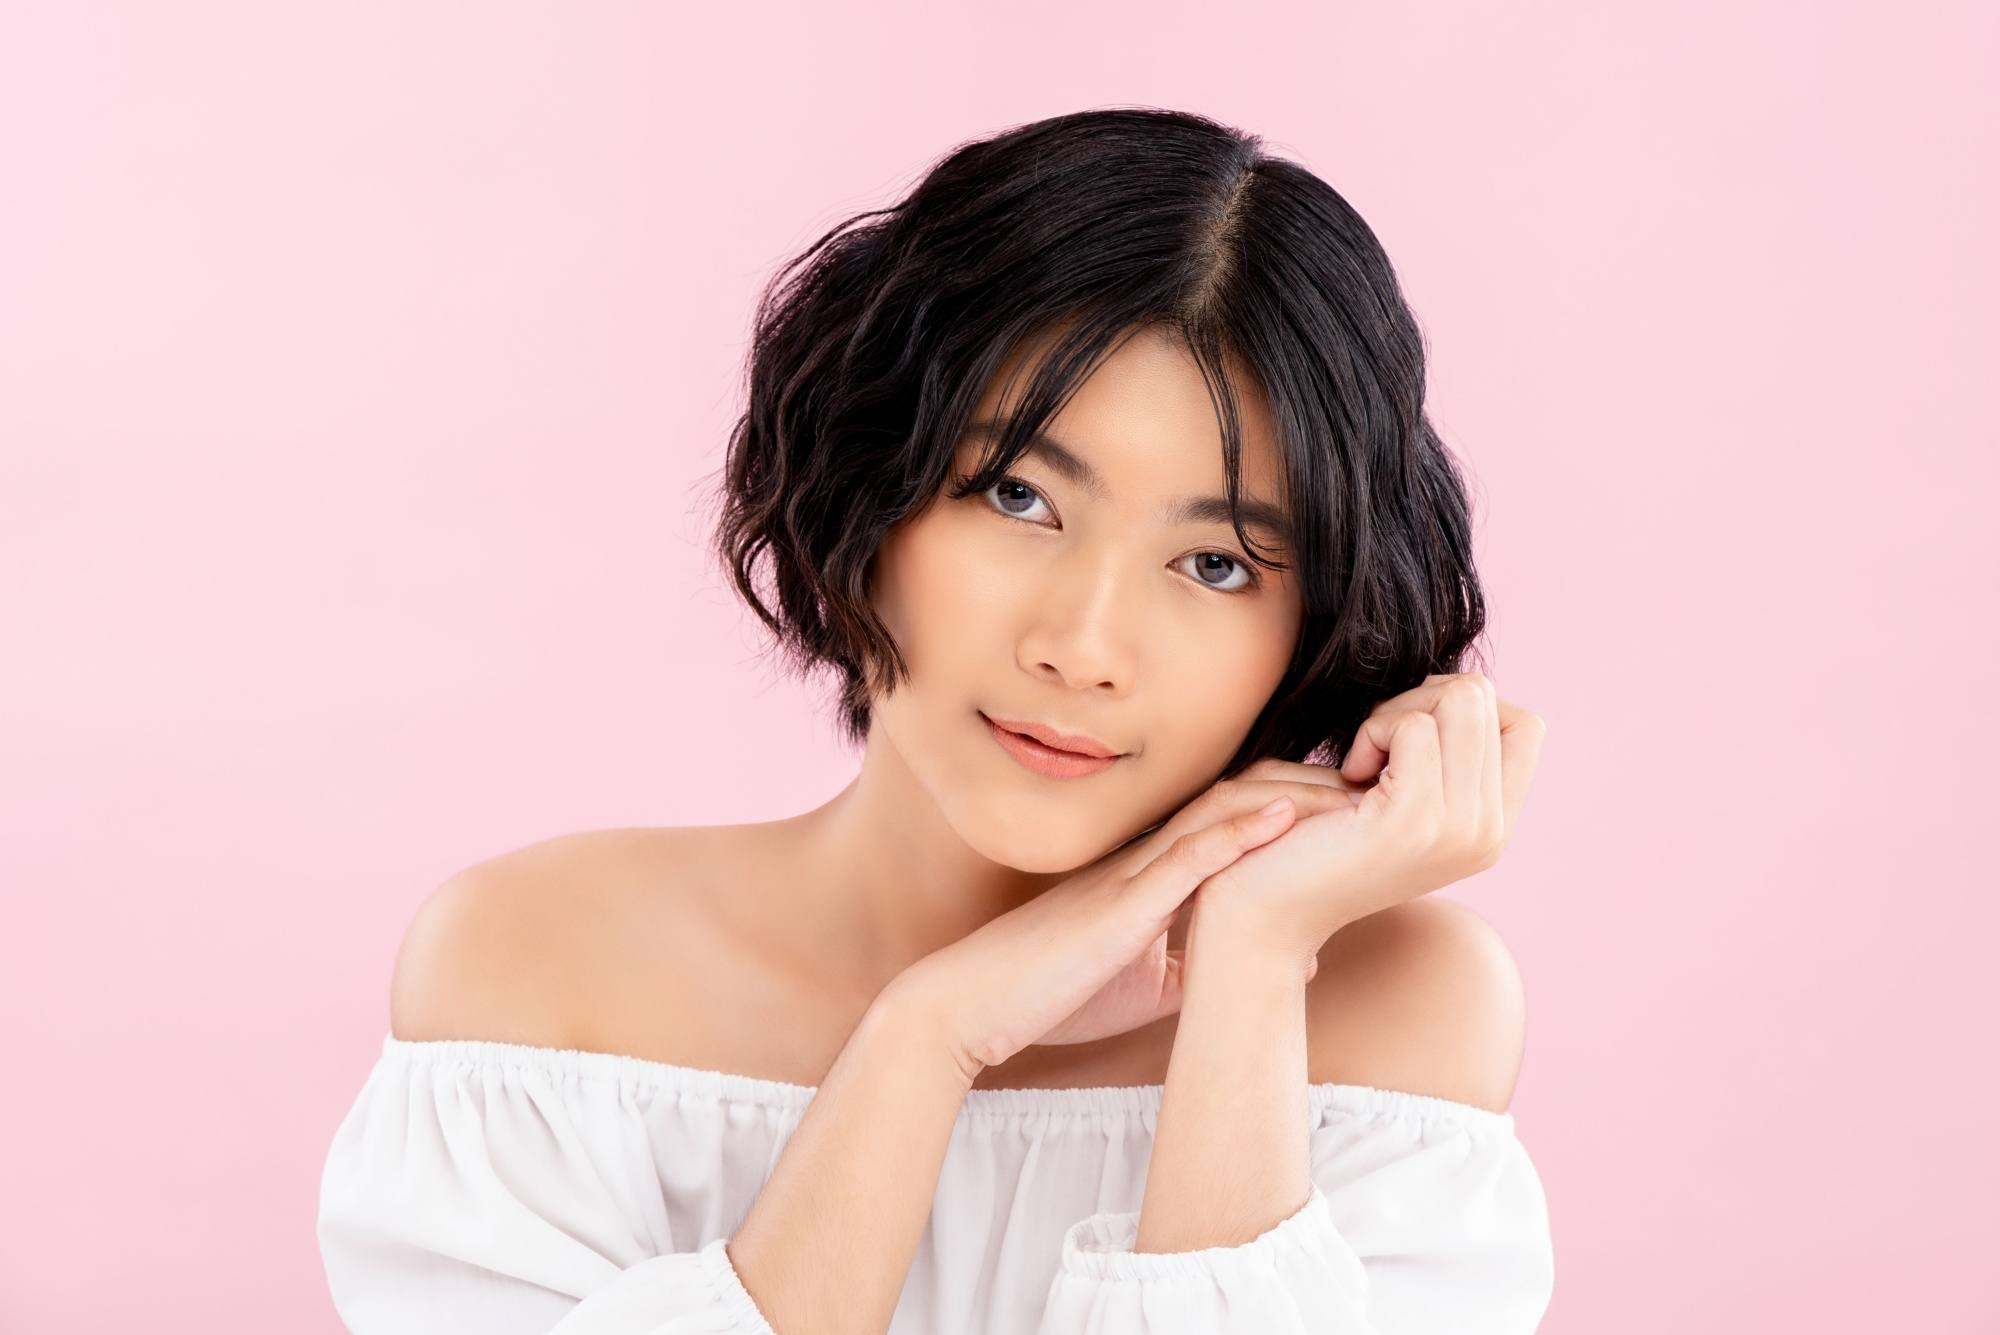 Asian woman with short wavy hair wearing a white off-shoulder top